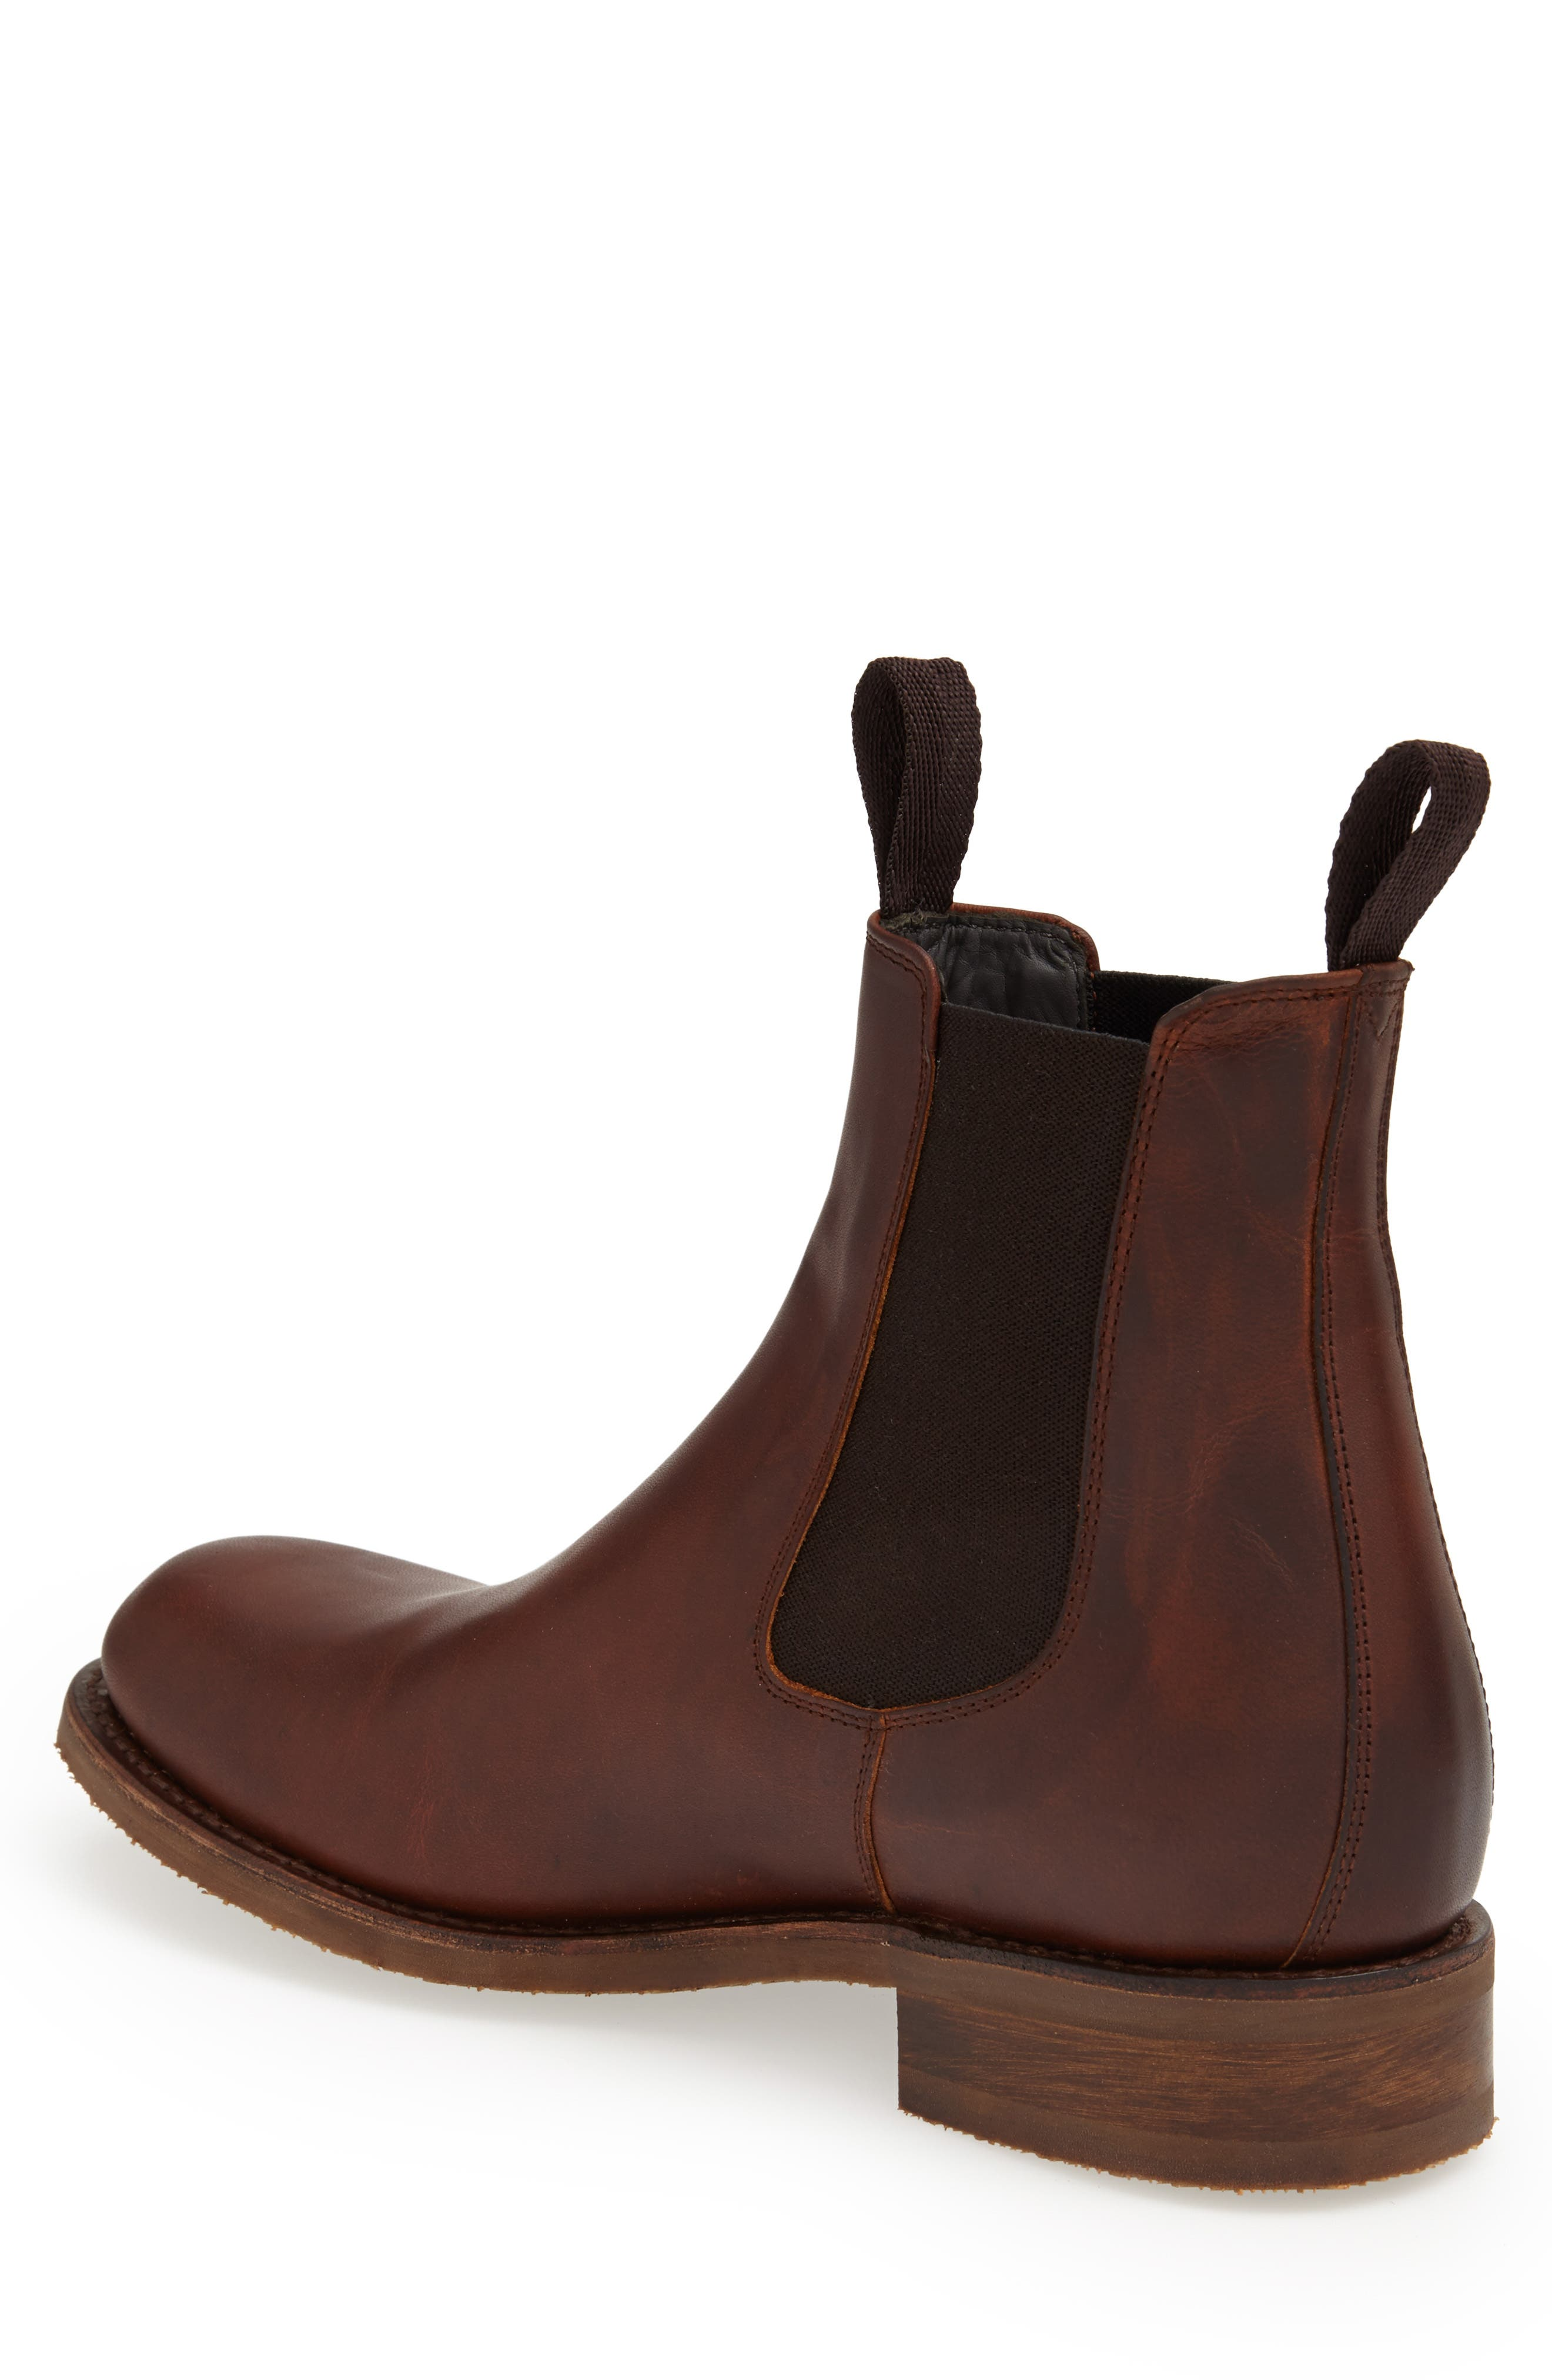 'Al' Chelsea Boot,                         Main,                         color, TAN